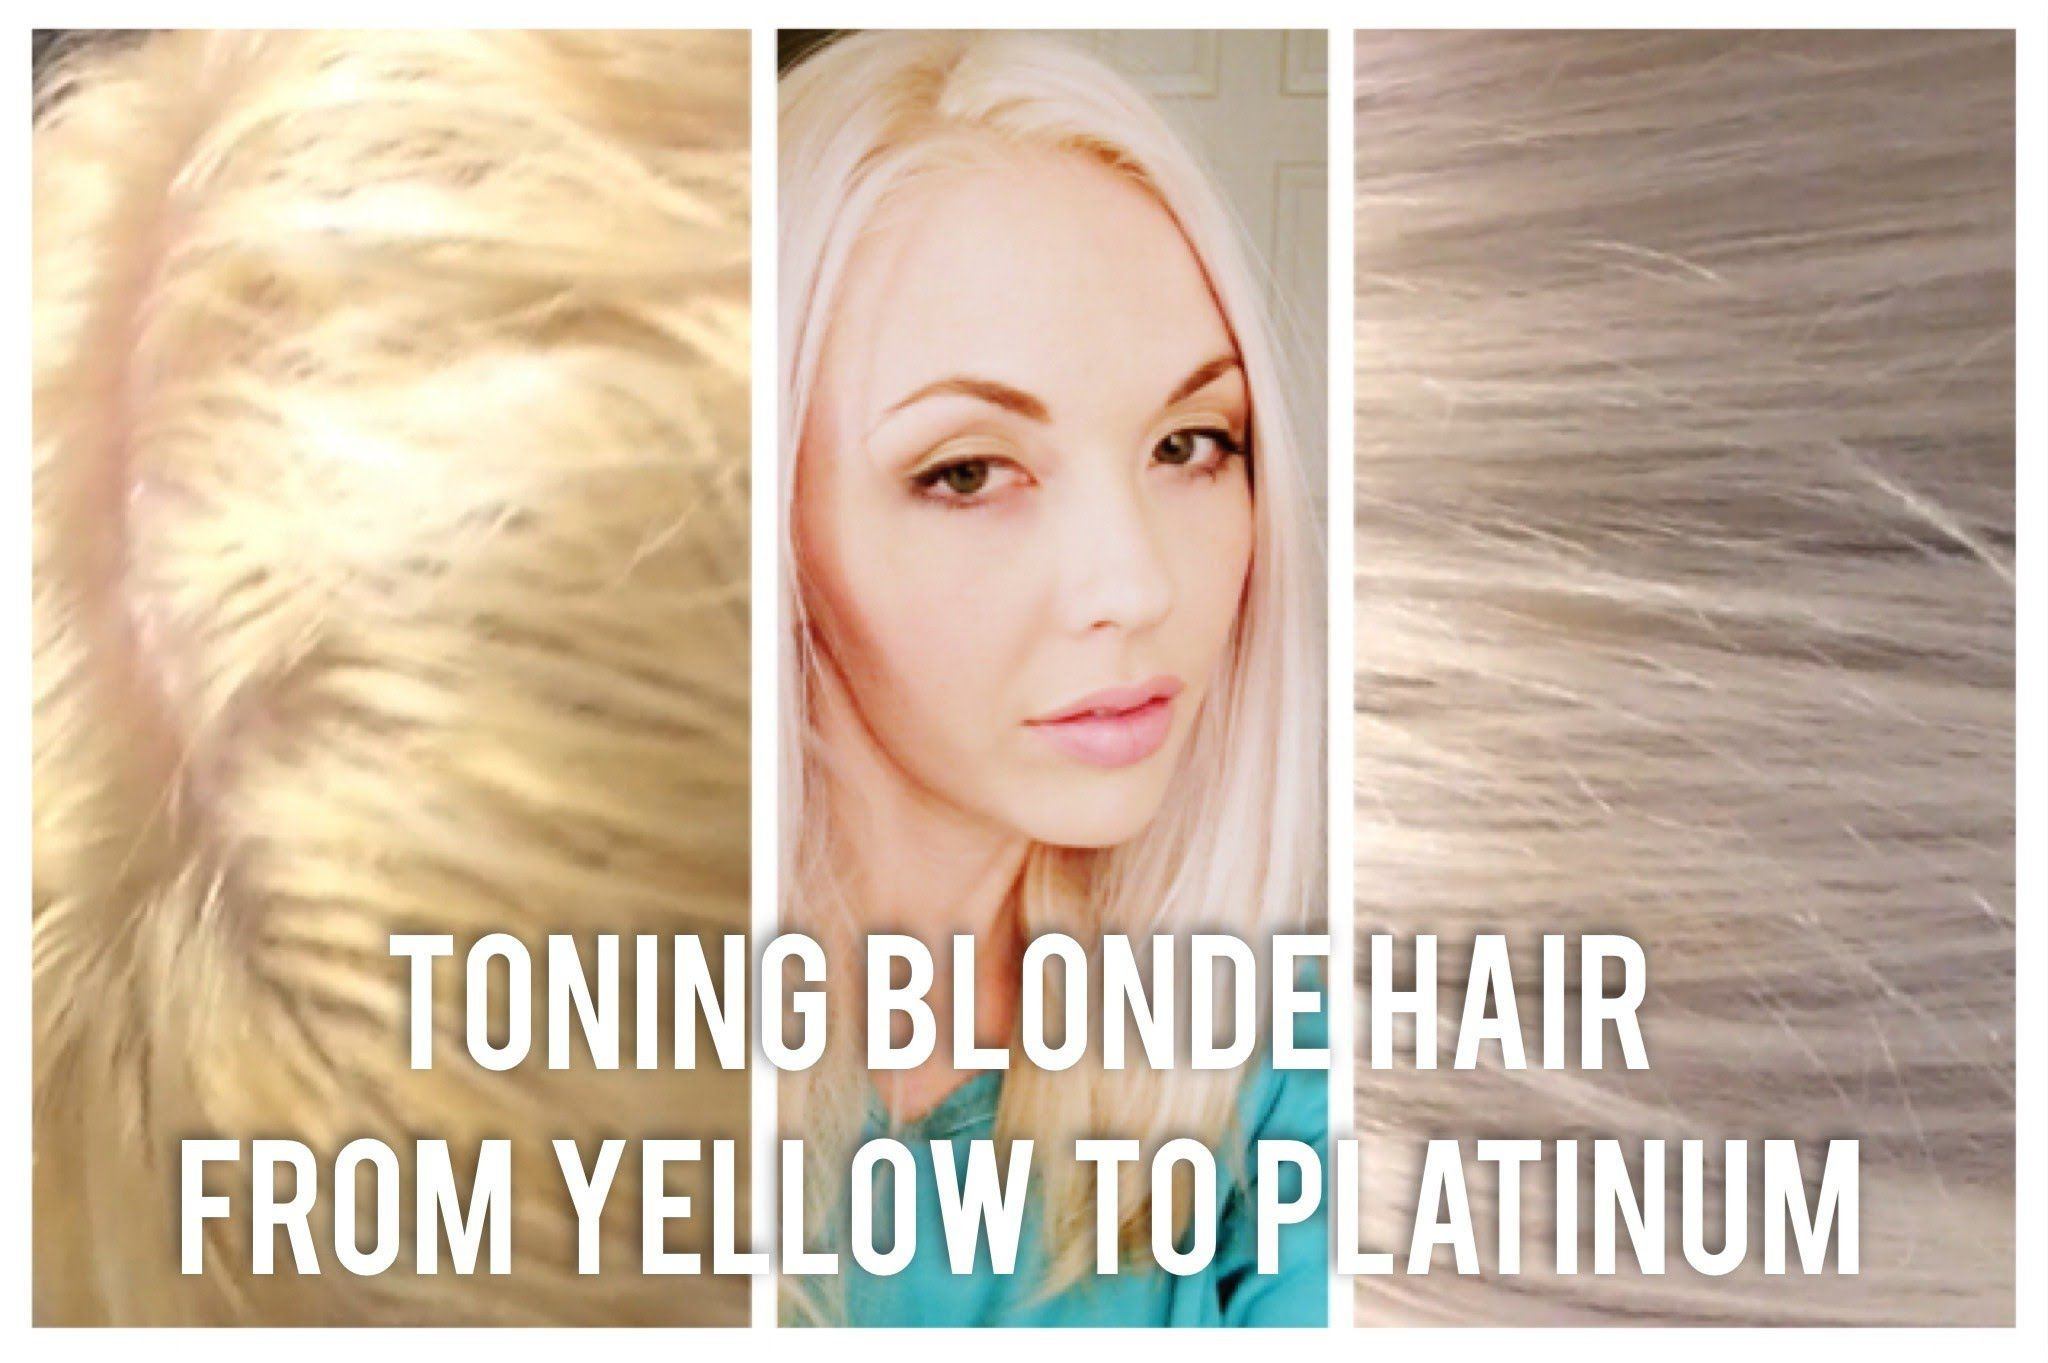 Diy Toning Blonde Hair From Brassy To Platinum At Home Toning Blonde Hair Bleach Blonde Hair Yellow Blonde Hair